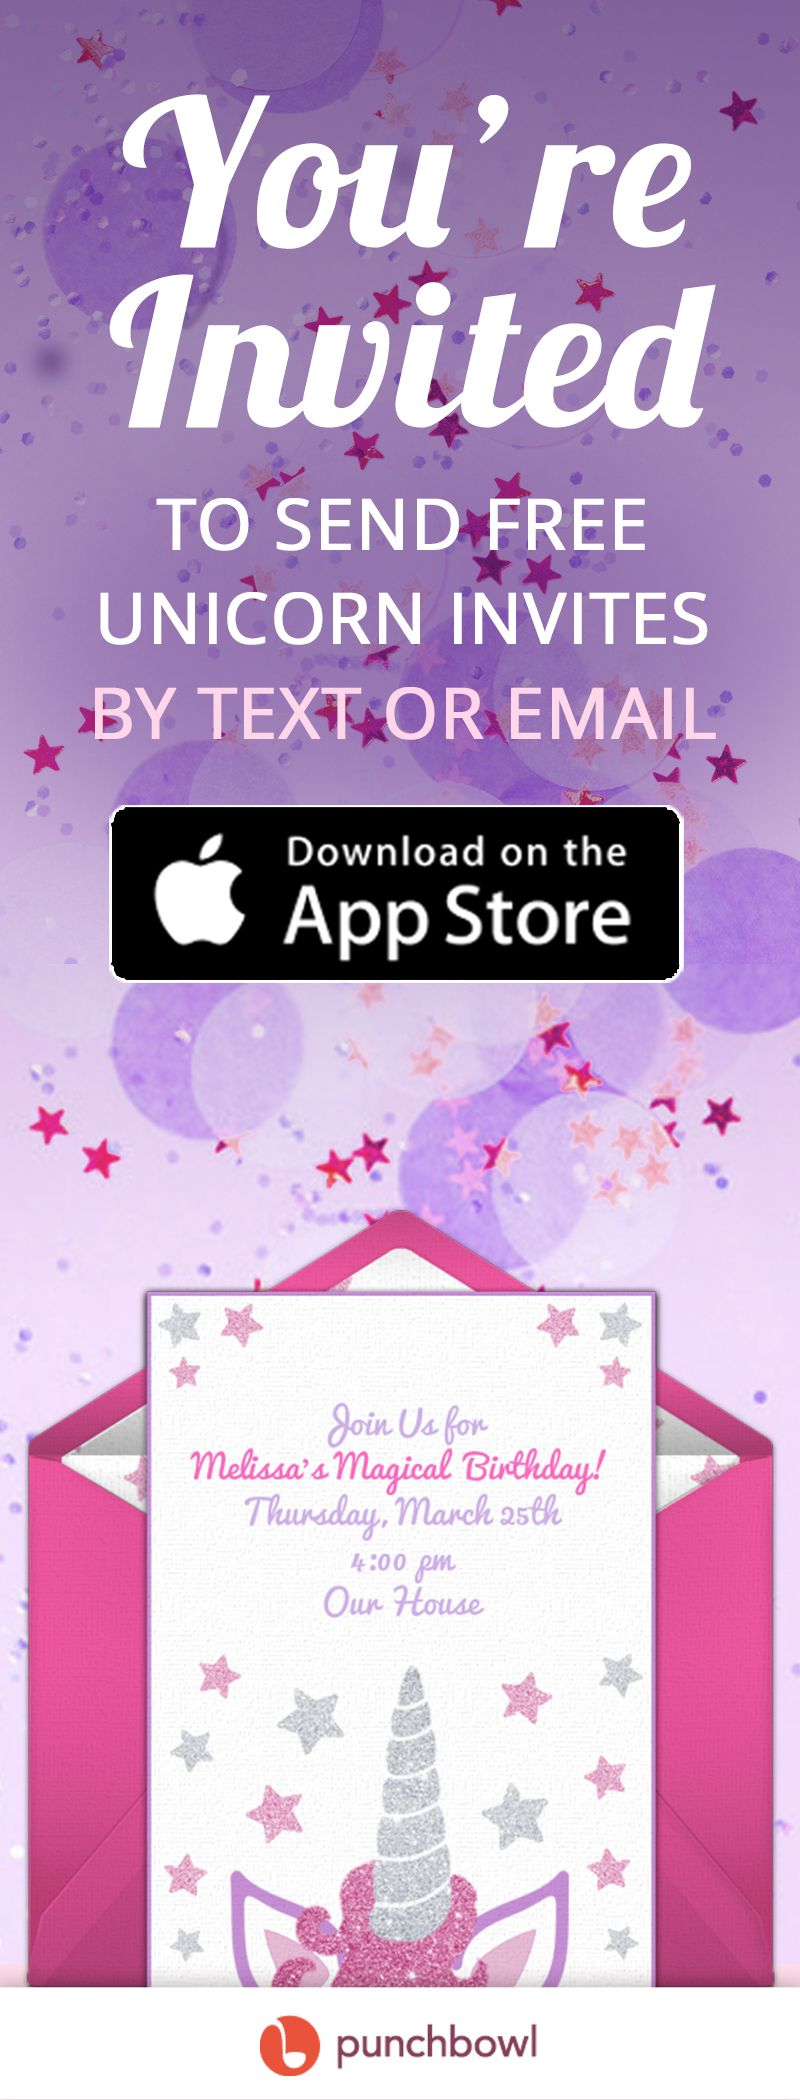 Send Free Unicorn Invitations By Text Message Right From Your Phone And Get RSVPs Instantly With